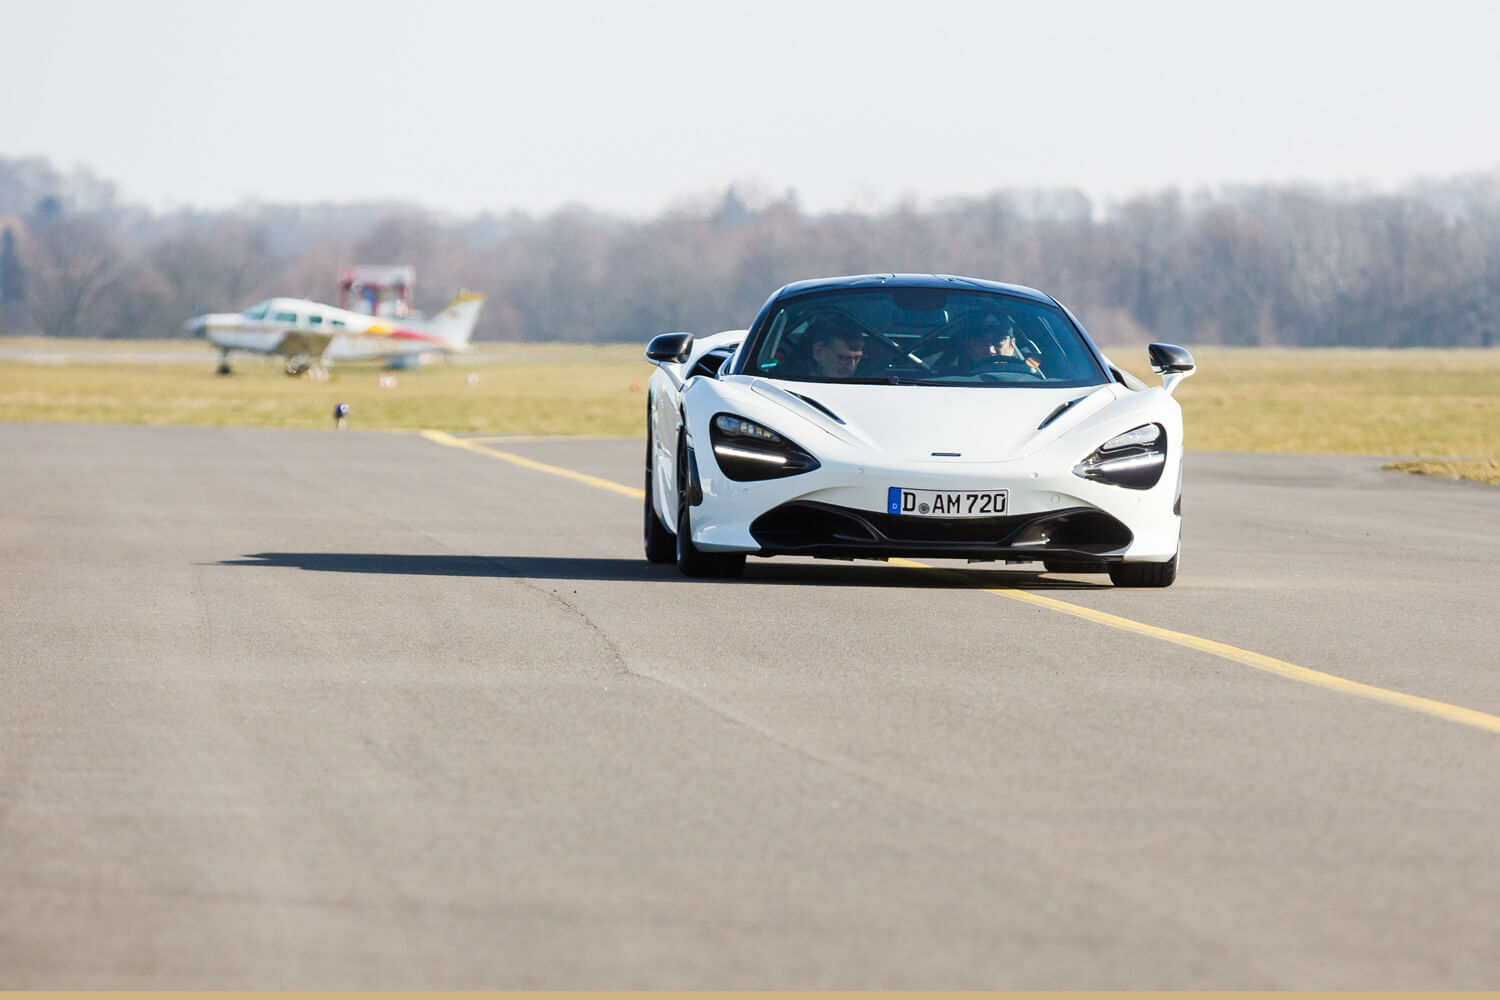 Ken Okuyama and Martin Darbyshire test the McLaren 720S